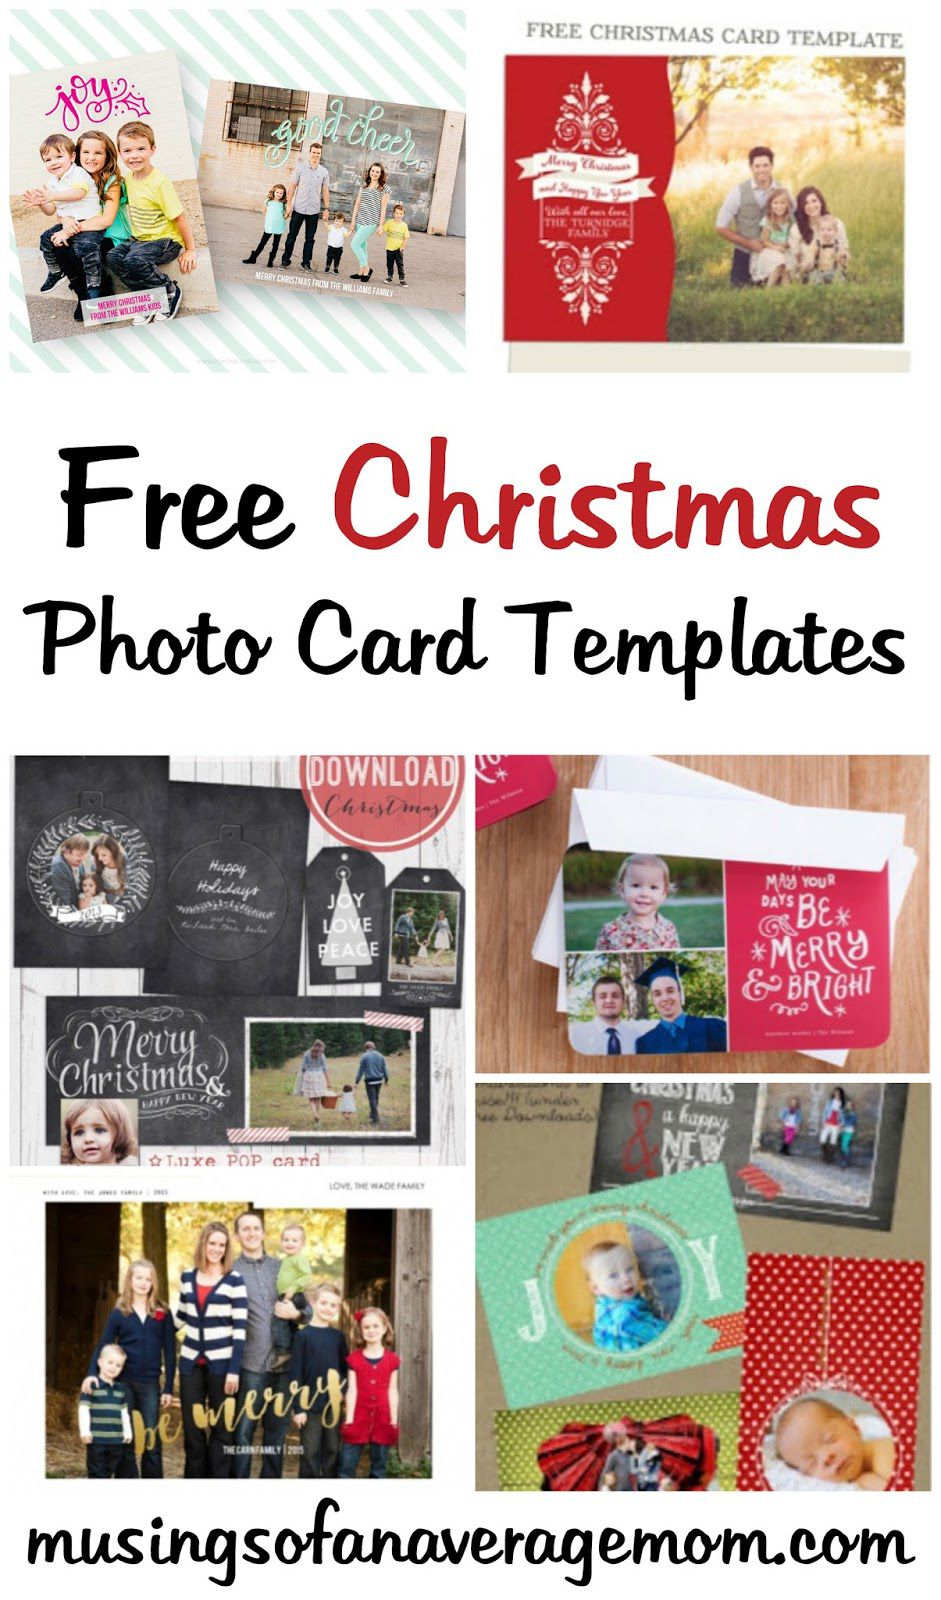 007 Beautiful Free Photo Christma Card Template Concept  Templates For Photoshop OnlineFull